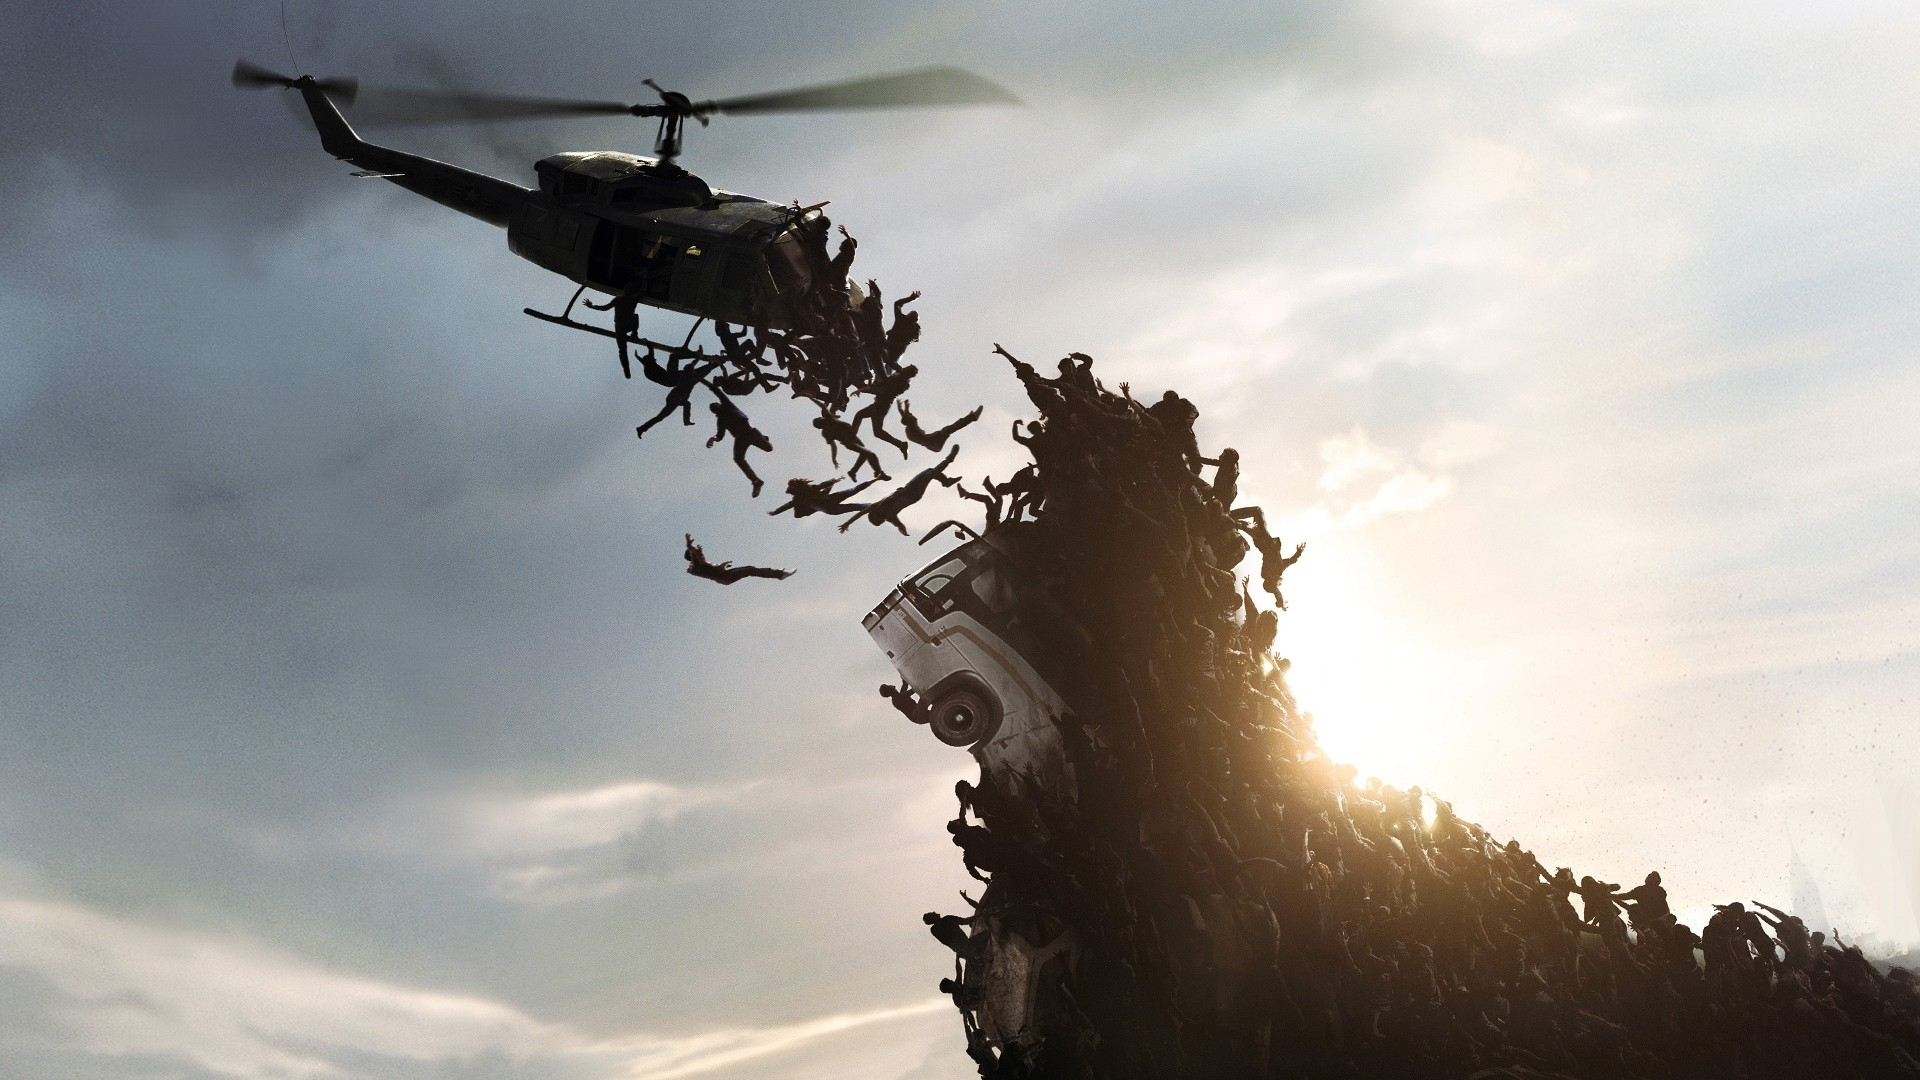 world war z full hd wallpaper and background image | 1920x1080 | id